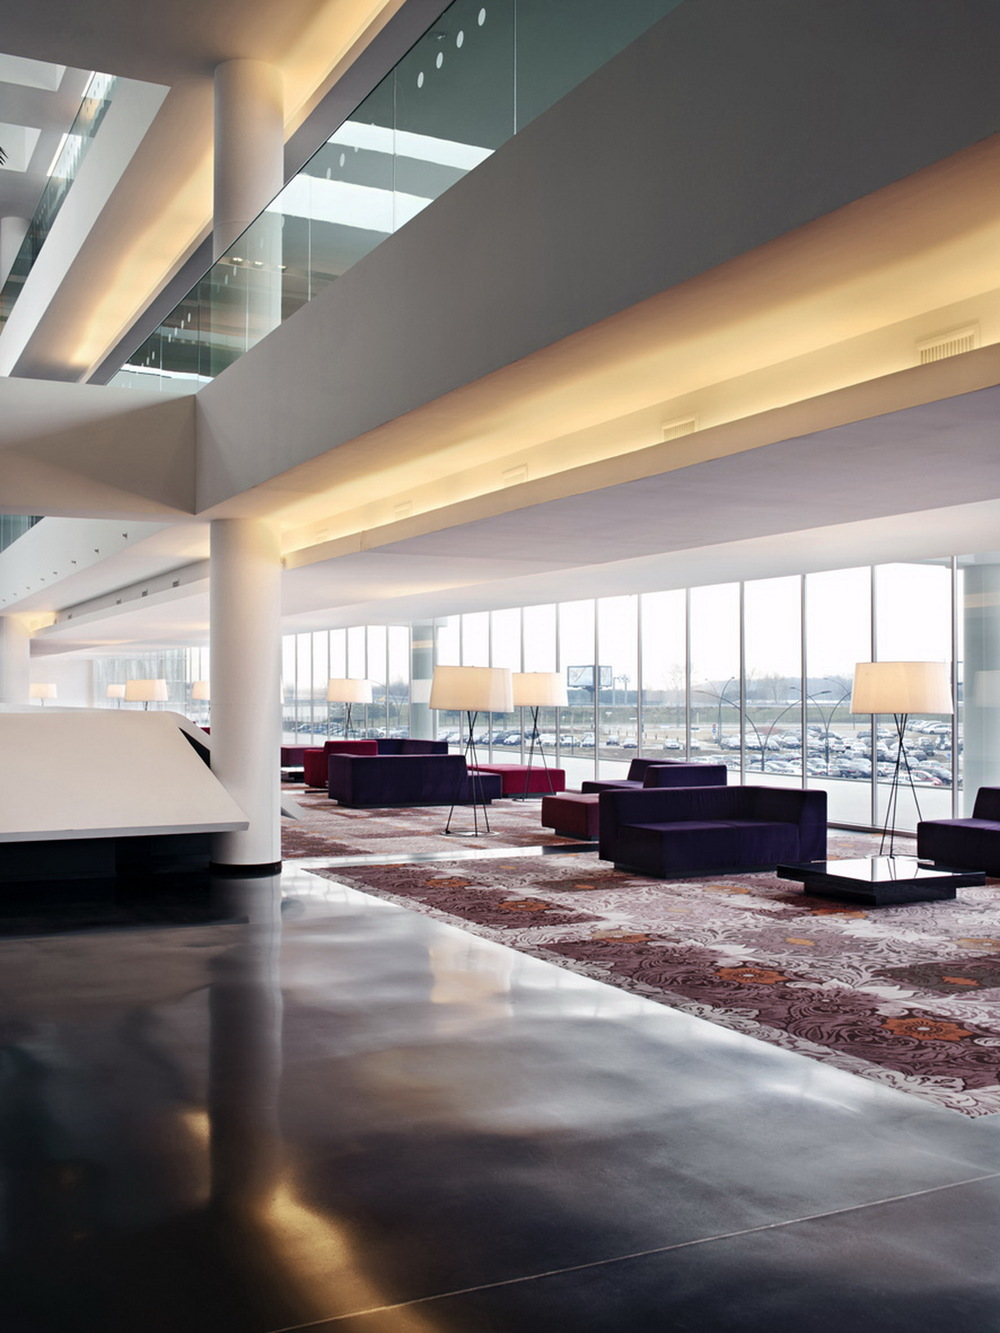 First Floor Lobby Lounge is situated on the upper level of the hotel with a spectacular view of Monte Rosa. The warm tones of wood and gold, purple and violet of the furnishing contrast of white and reflective surfaces of the exterior structure.